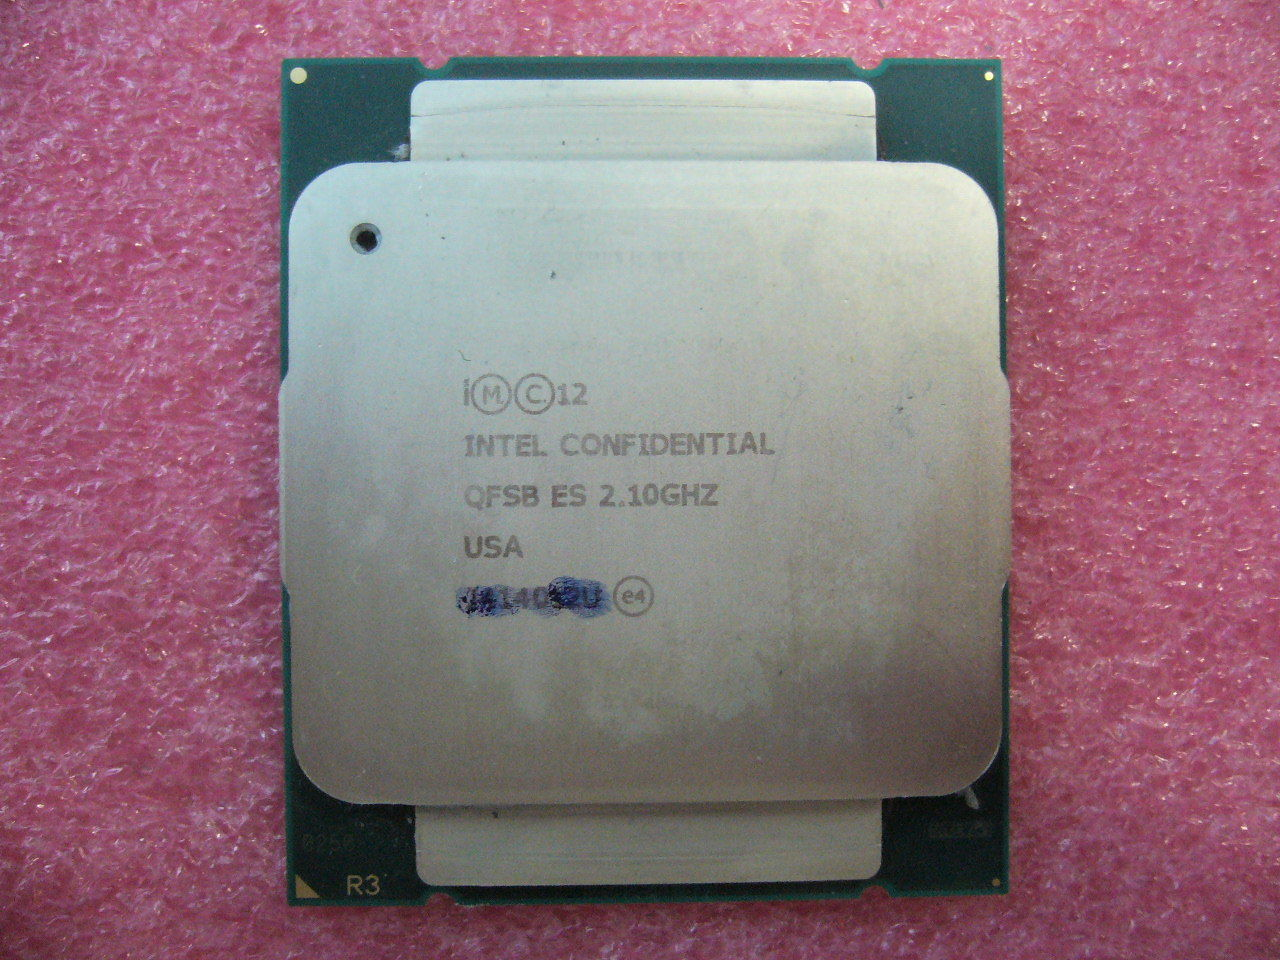 QTY 1x Intel ES CPU E5-2650 V3 Ten-Cores 2.1 Ghz 25MB Cache LGA2011-3 QFSB